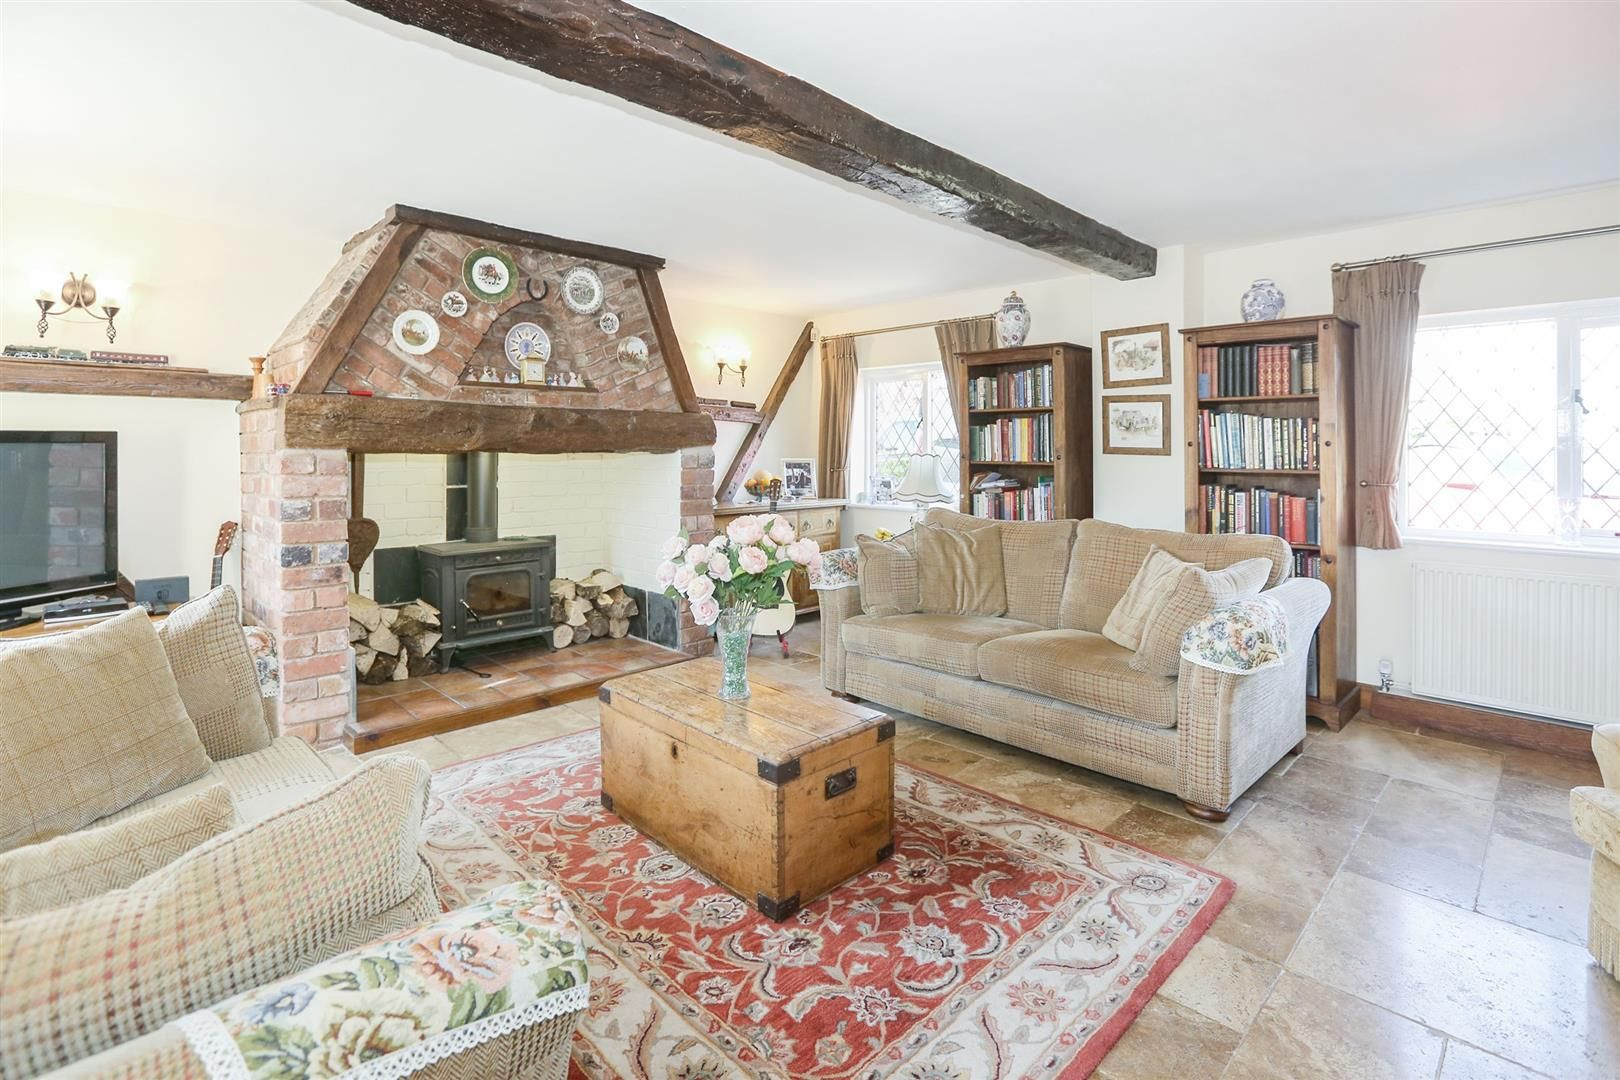 3 bed house for sale in Hagley 2